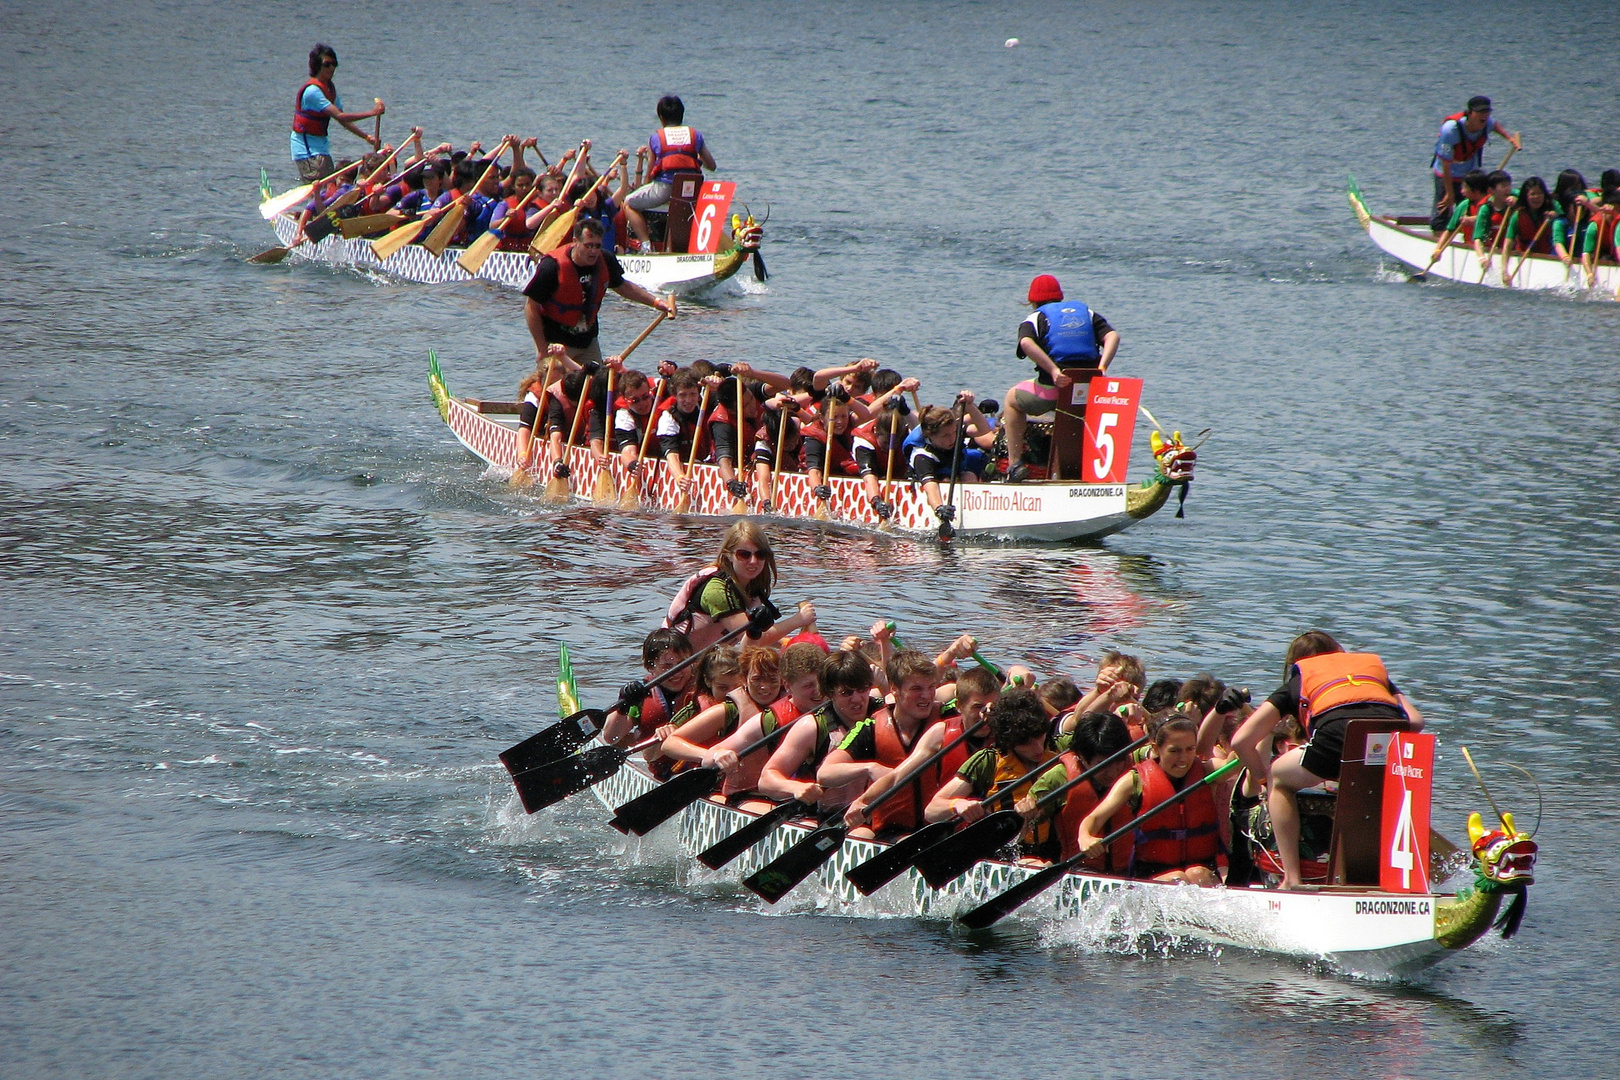 Dragon Boats in Action